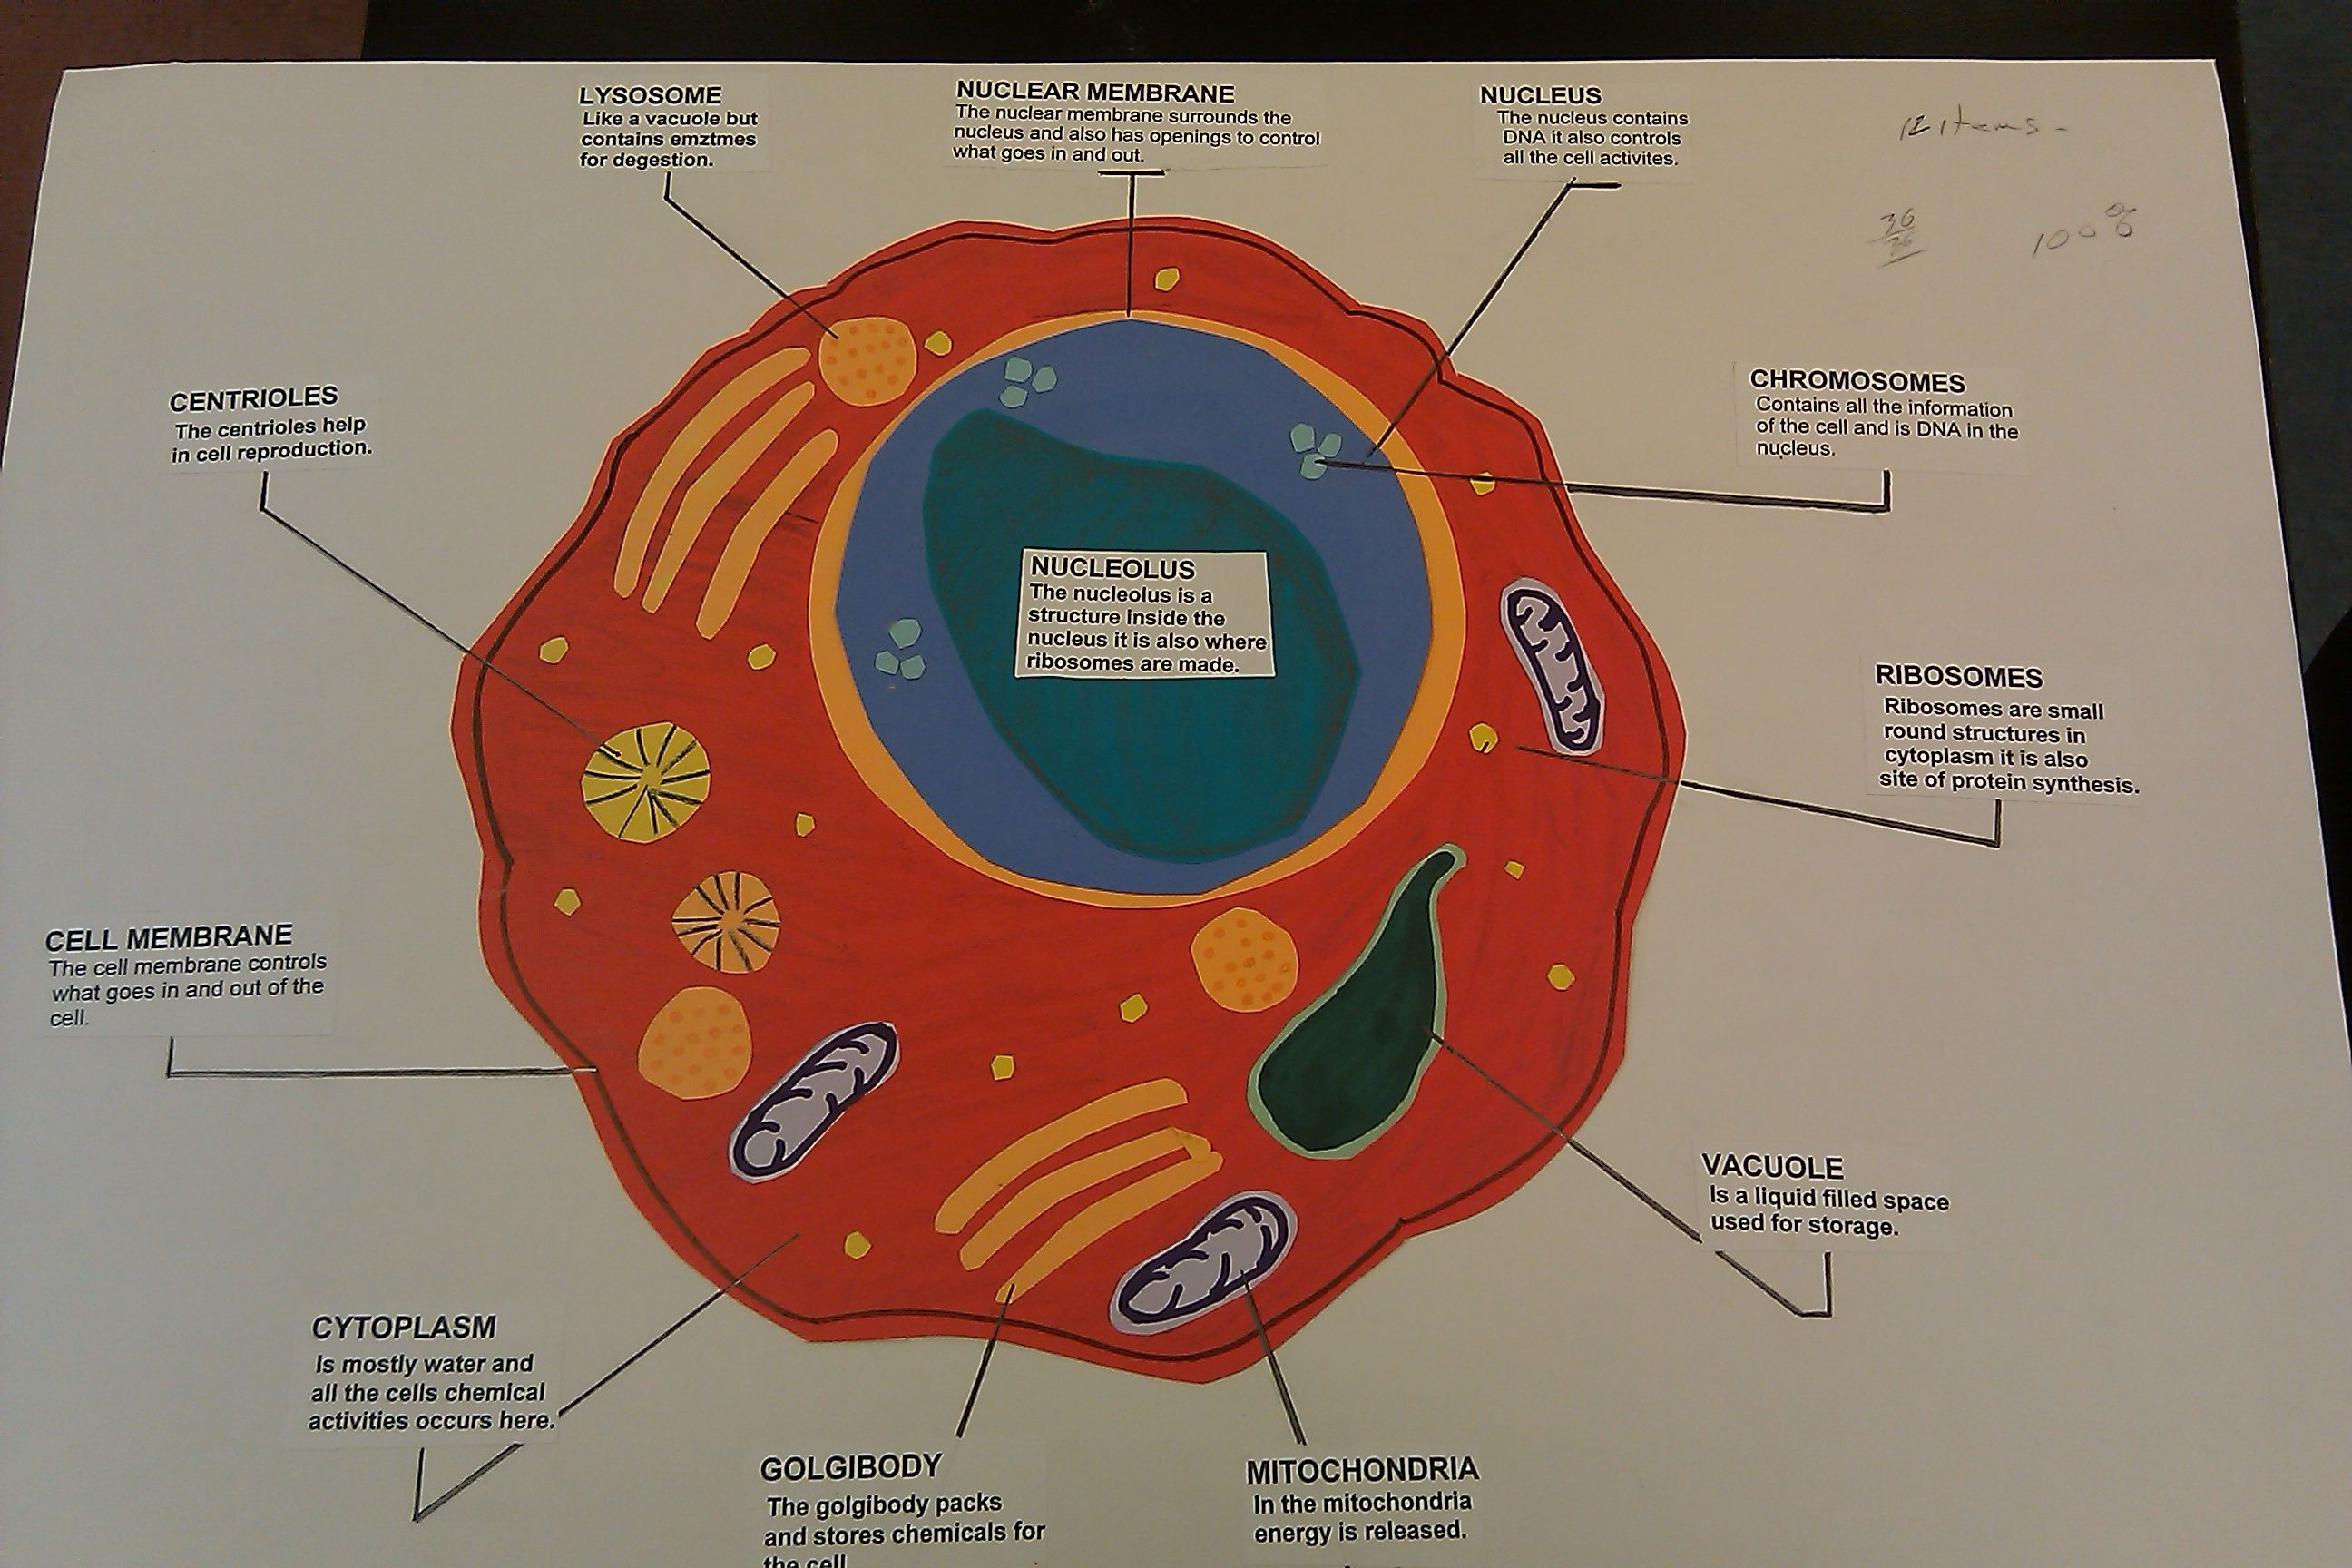 Cell structure and function poster ideas google search 7th grade cell structure and function poster ideas google search ccuart